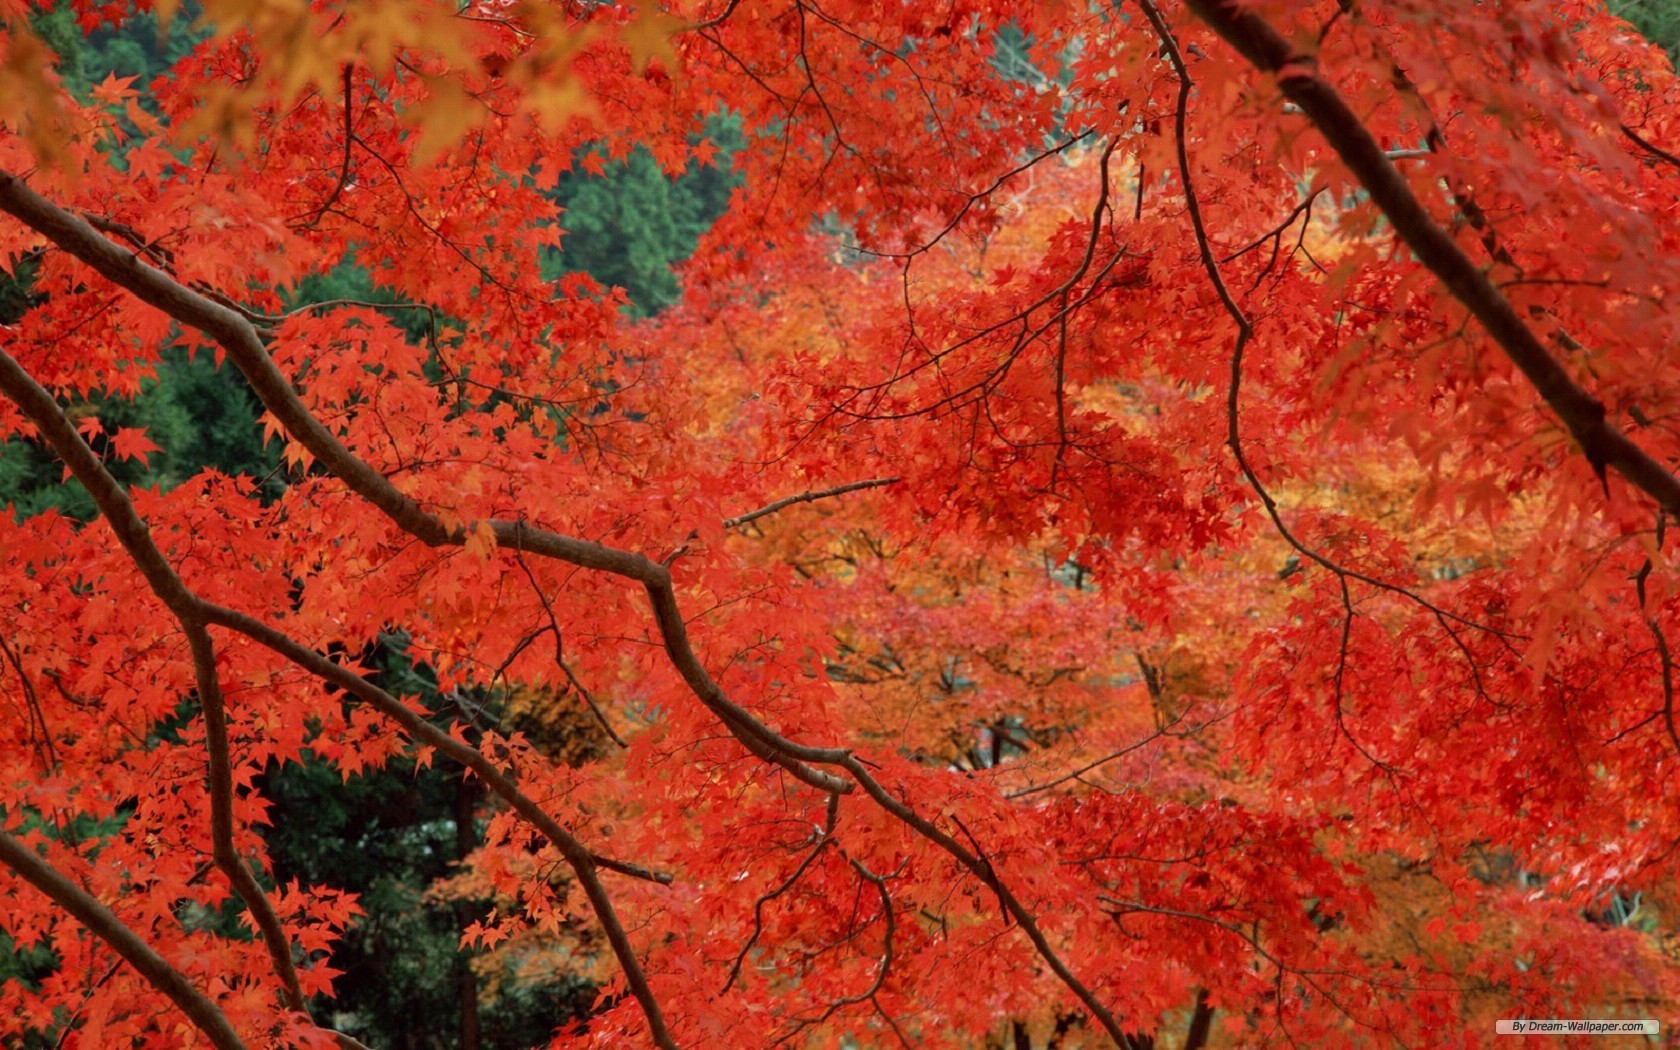 Wallpaper   Nature wallpaper   Autumn Red Leaves wallpaper 1680x1050